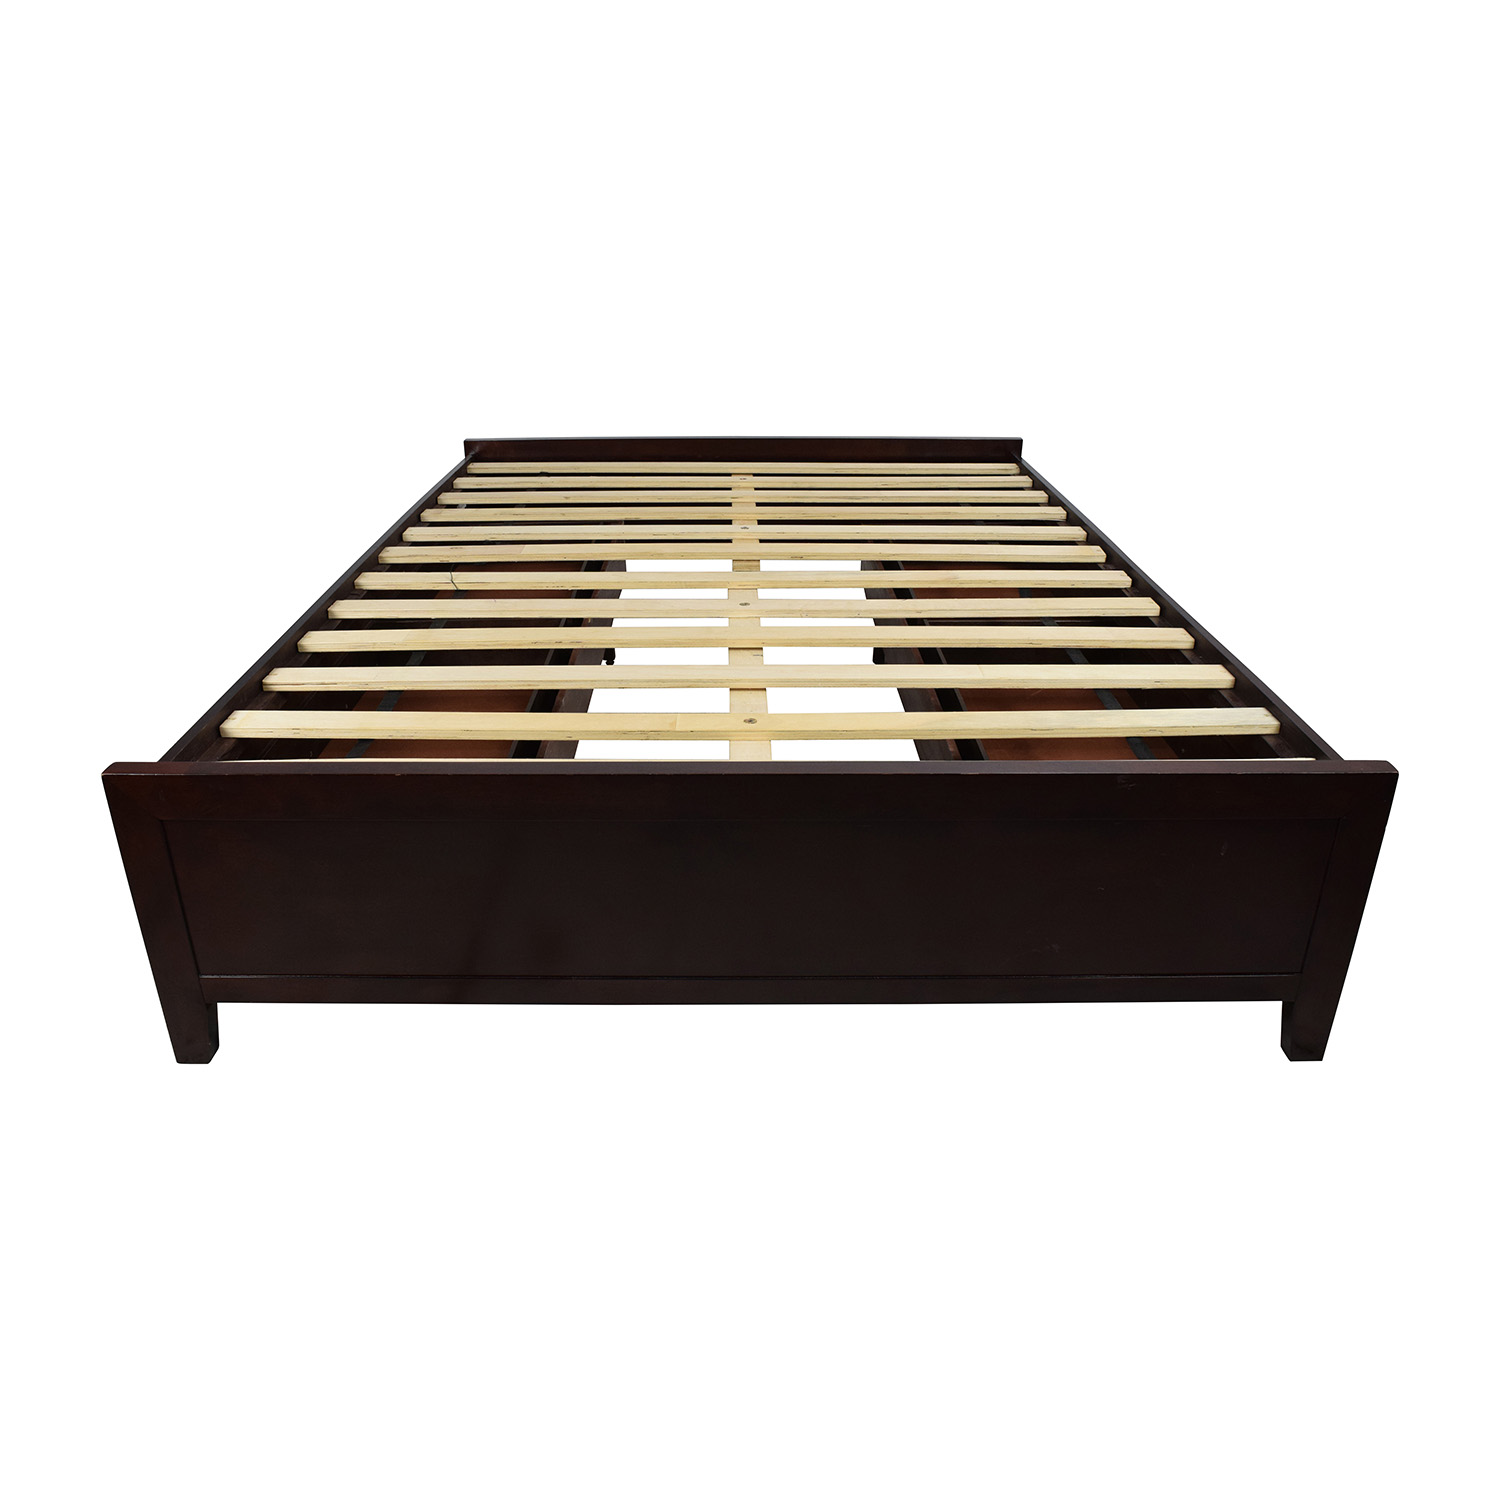 best website 18f22 1d4bf 67% OFF - Wooden Queen Size Storage Bed Frame / Beds